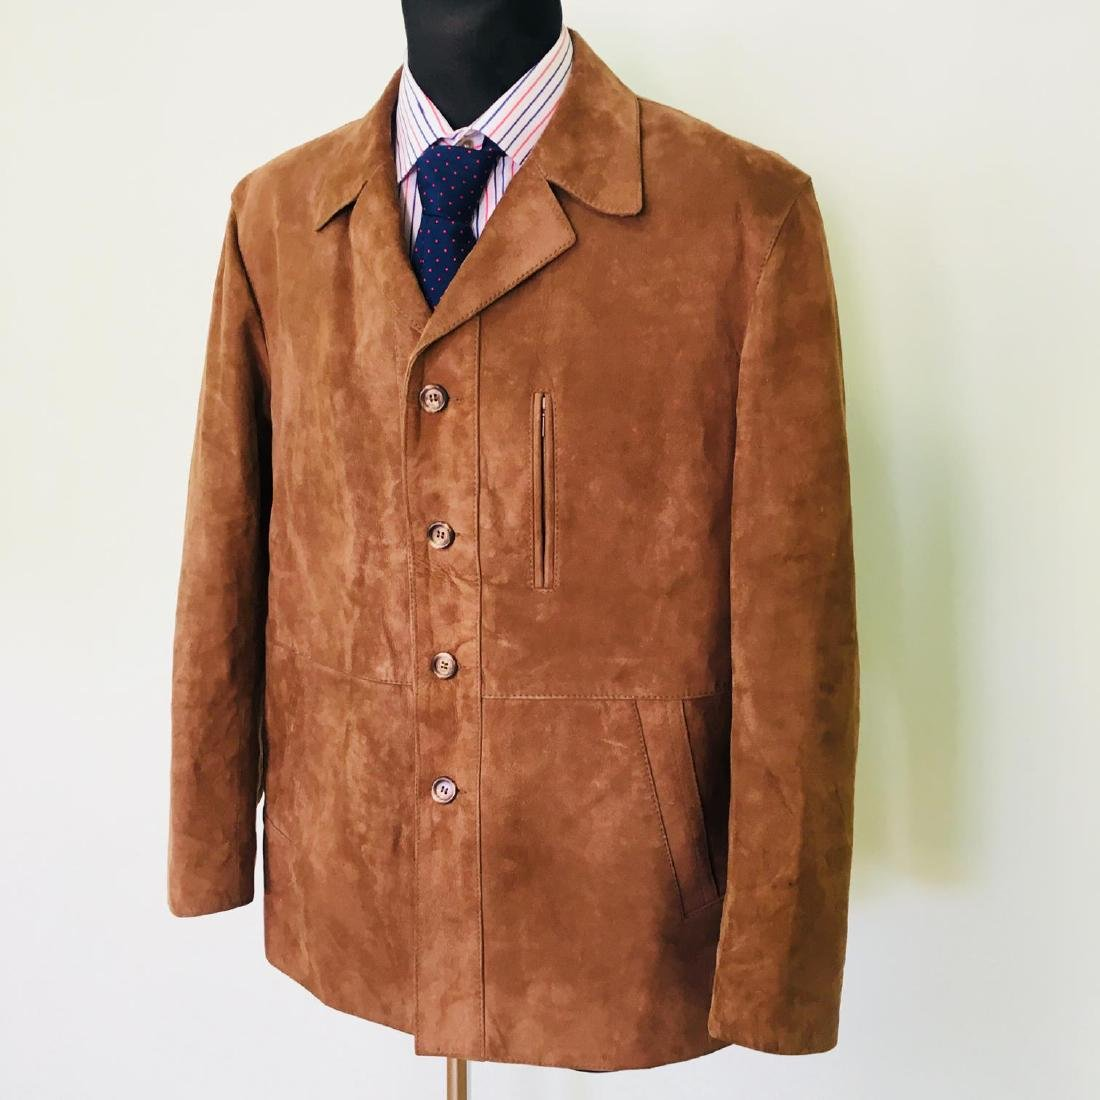 Vintage Men's Canda Designer Genuine Leather Jacket - 2